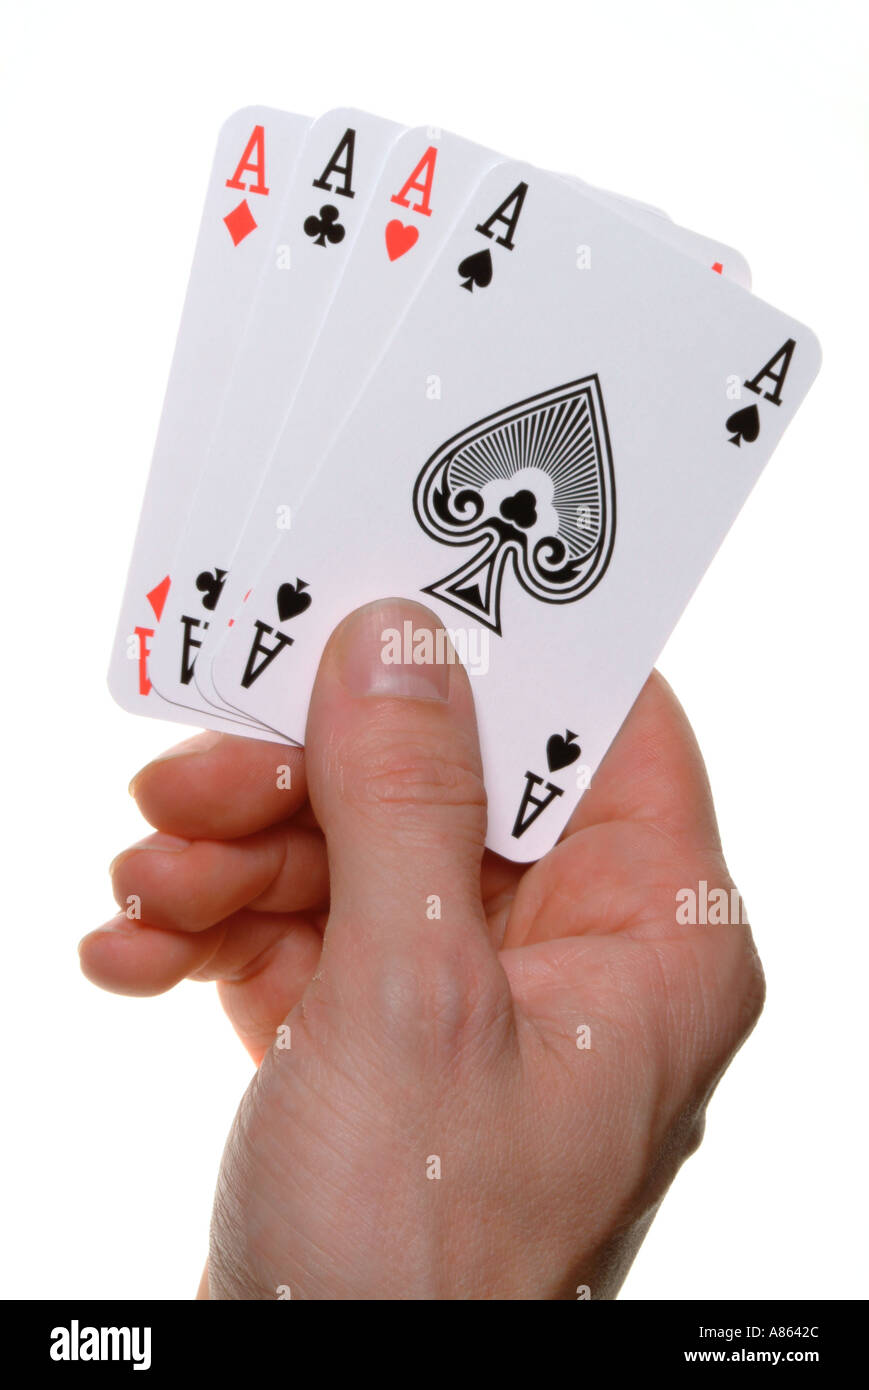 mans hand holding four ace playing cards - Stock Image